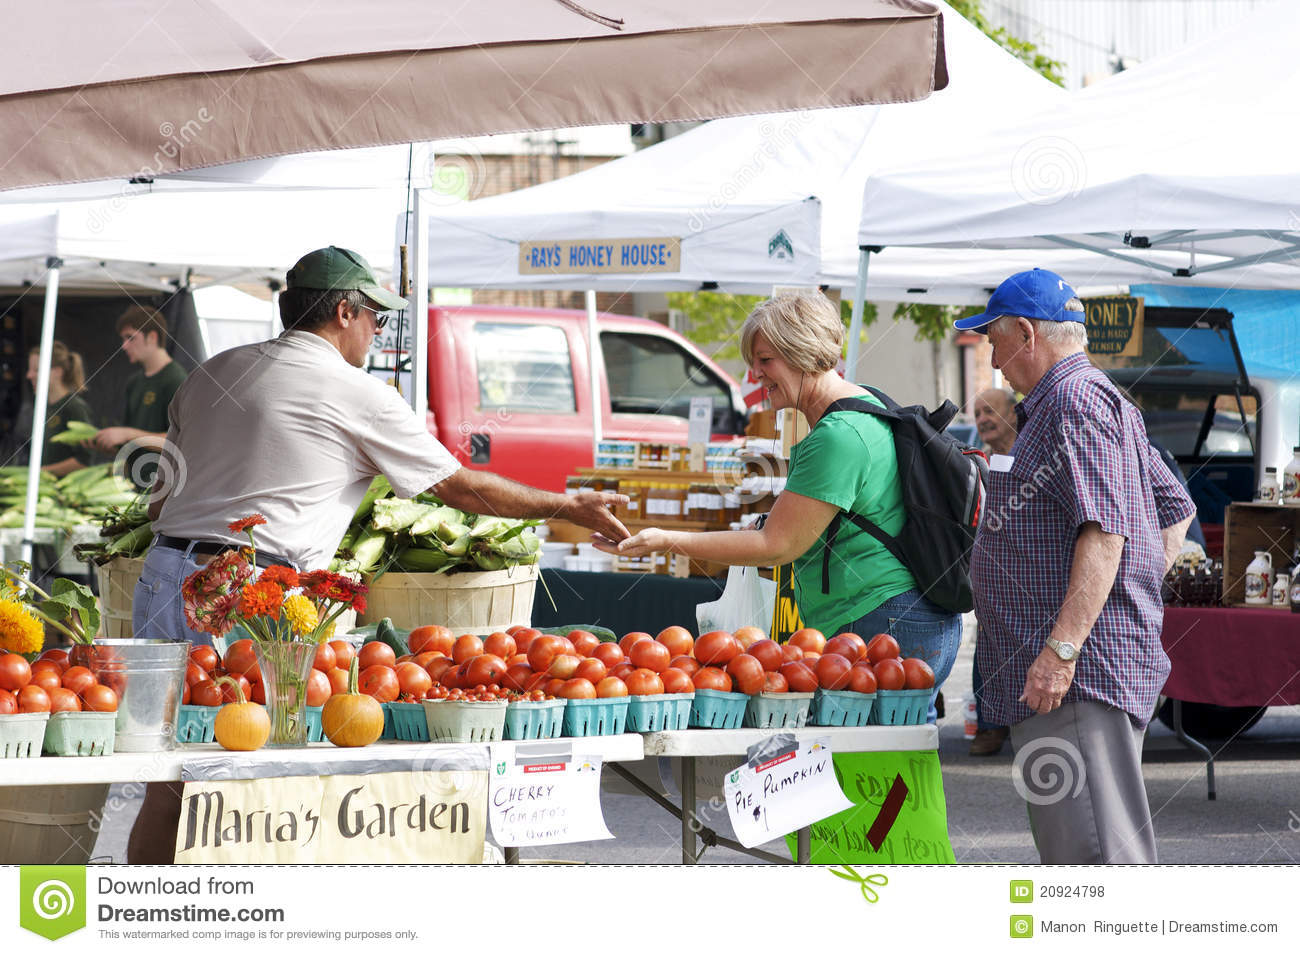 Editorial Stock Photo: Community Farmers Market: www.dreamstime.com/royalty-free-stock-photos-community-farmers...